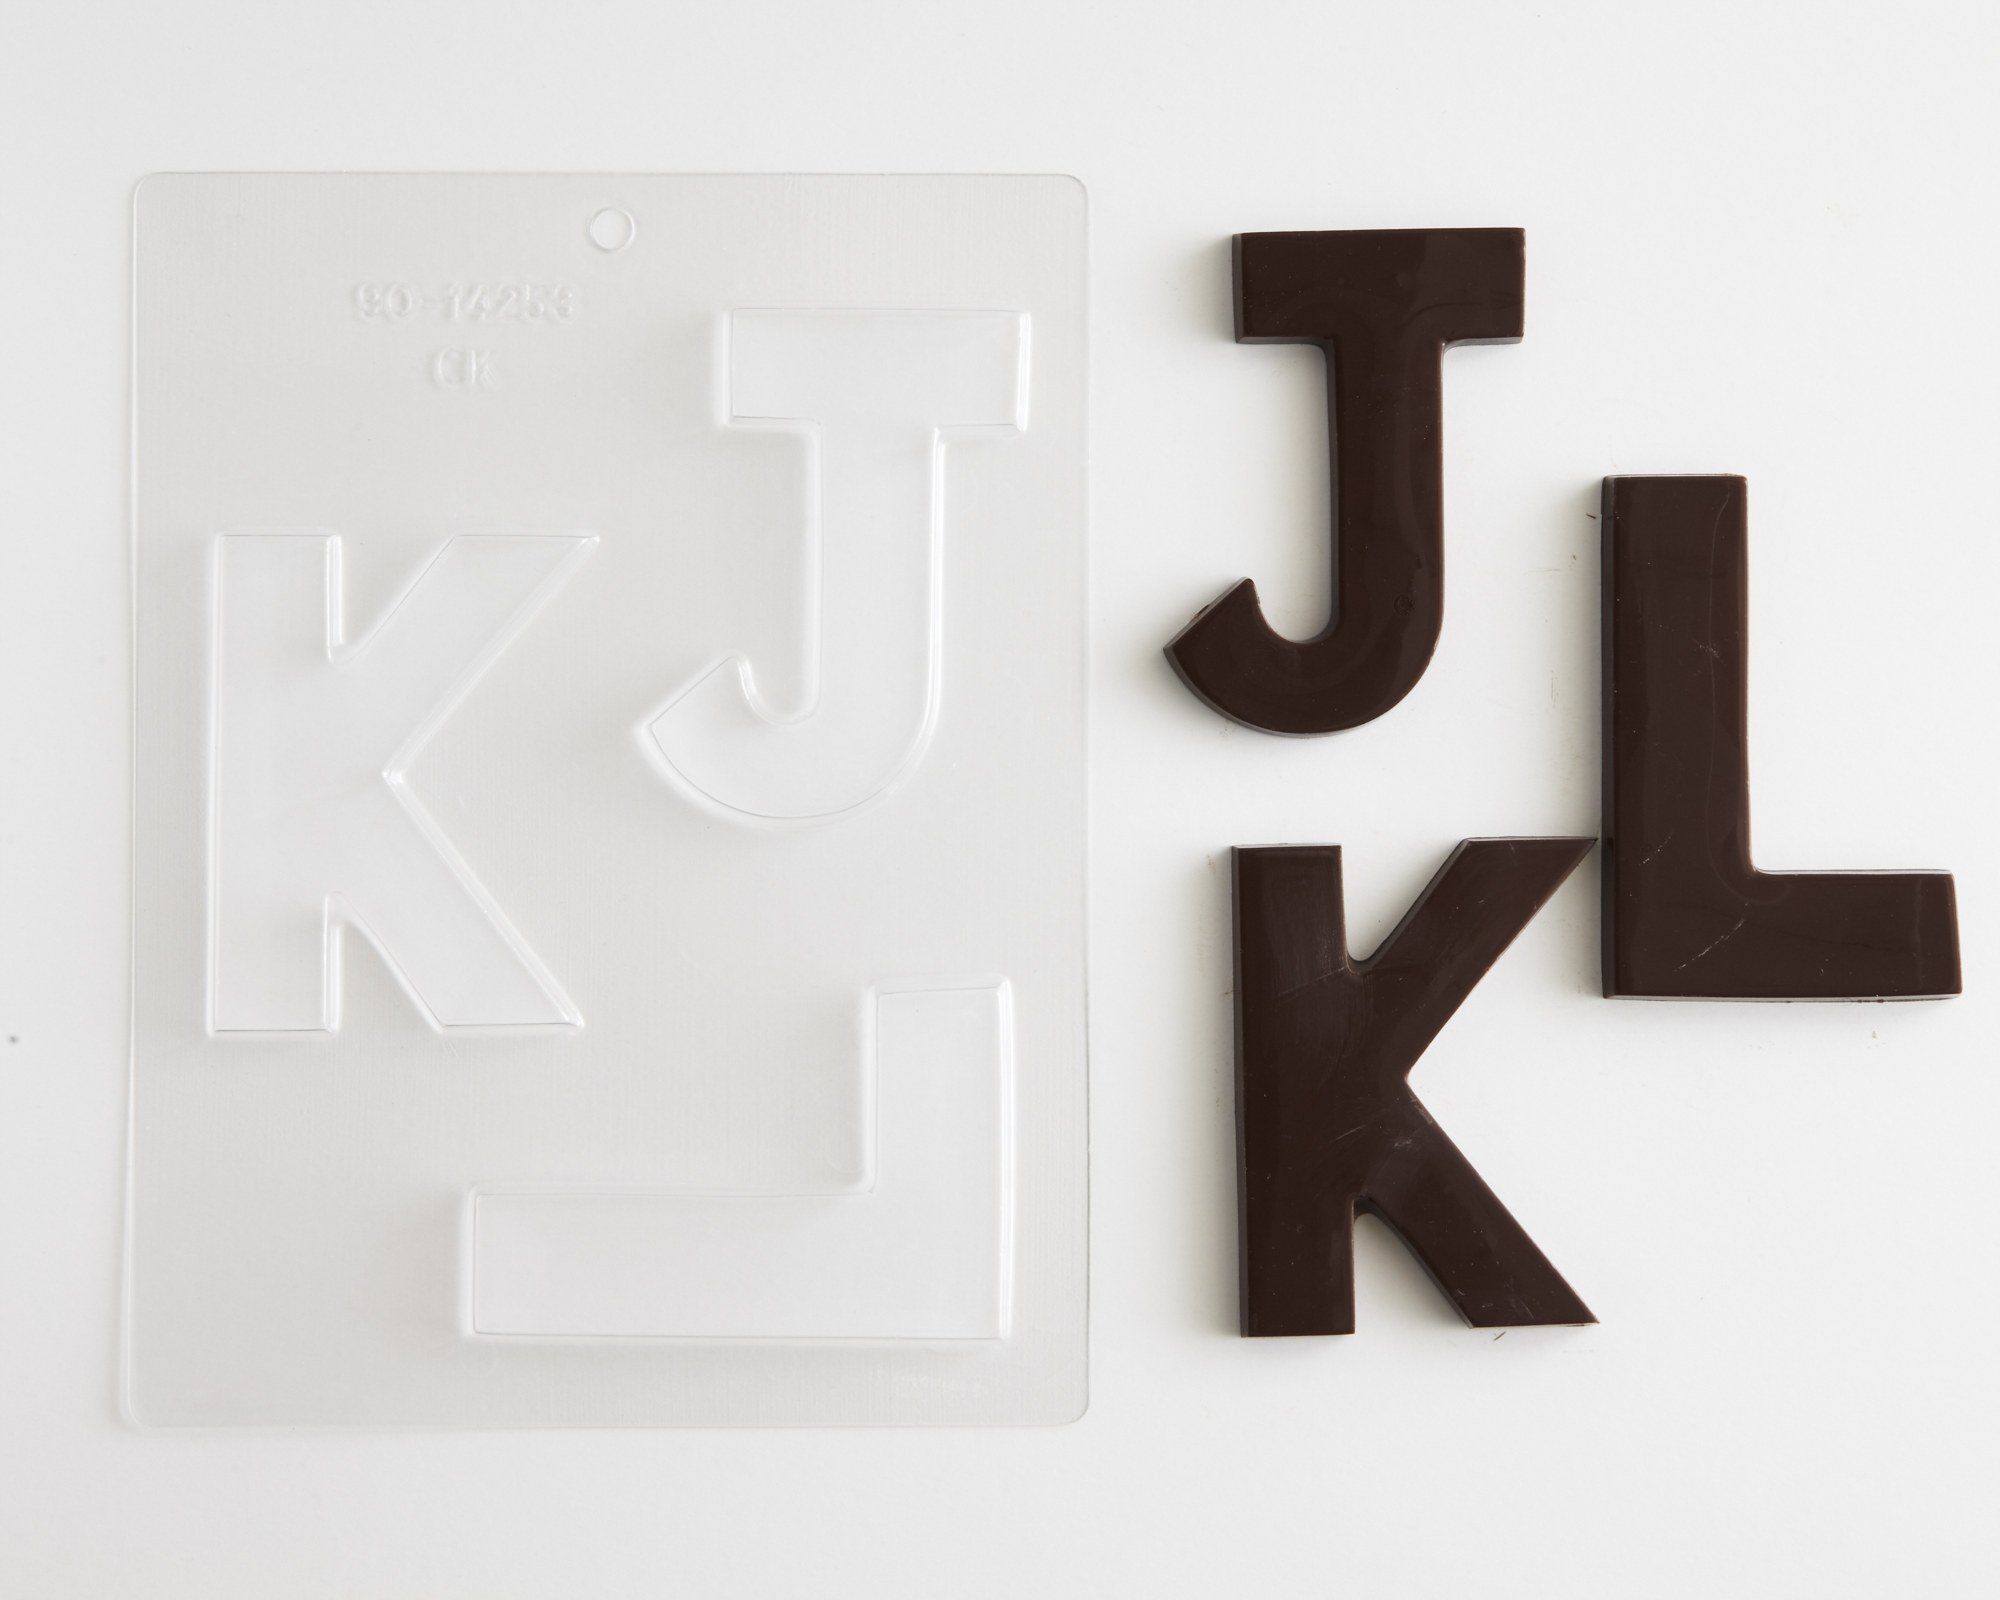 Large Block Letters Chocolate Candy Molds - A - Z (8) 4'' Letter Alphabet Set (Cakegirls Chocolate Mold Instructions Included) by Cakegirls (Image #4)